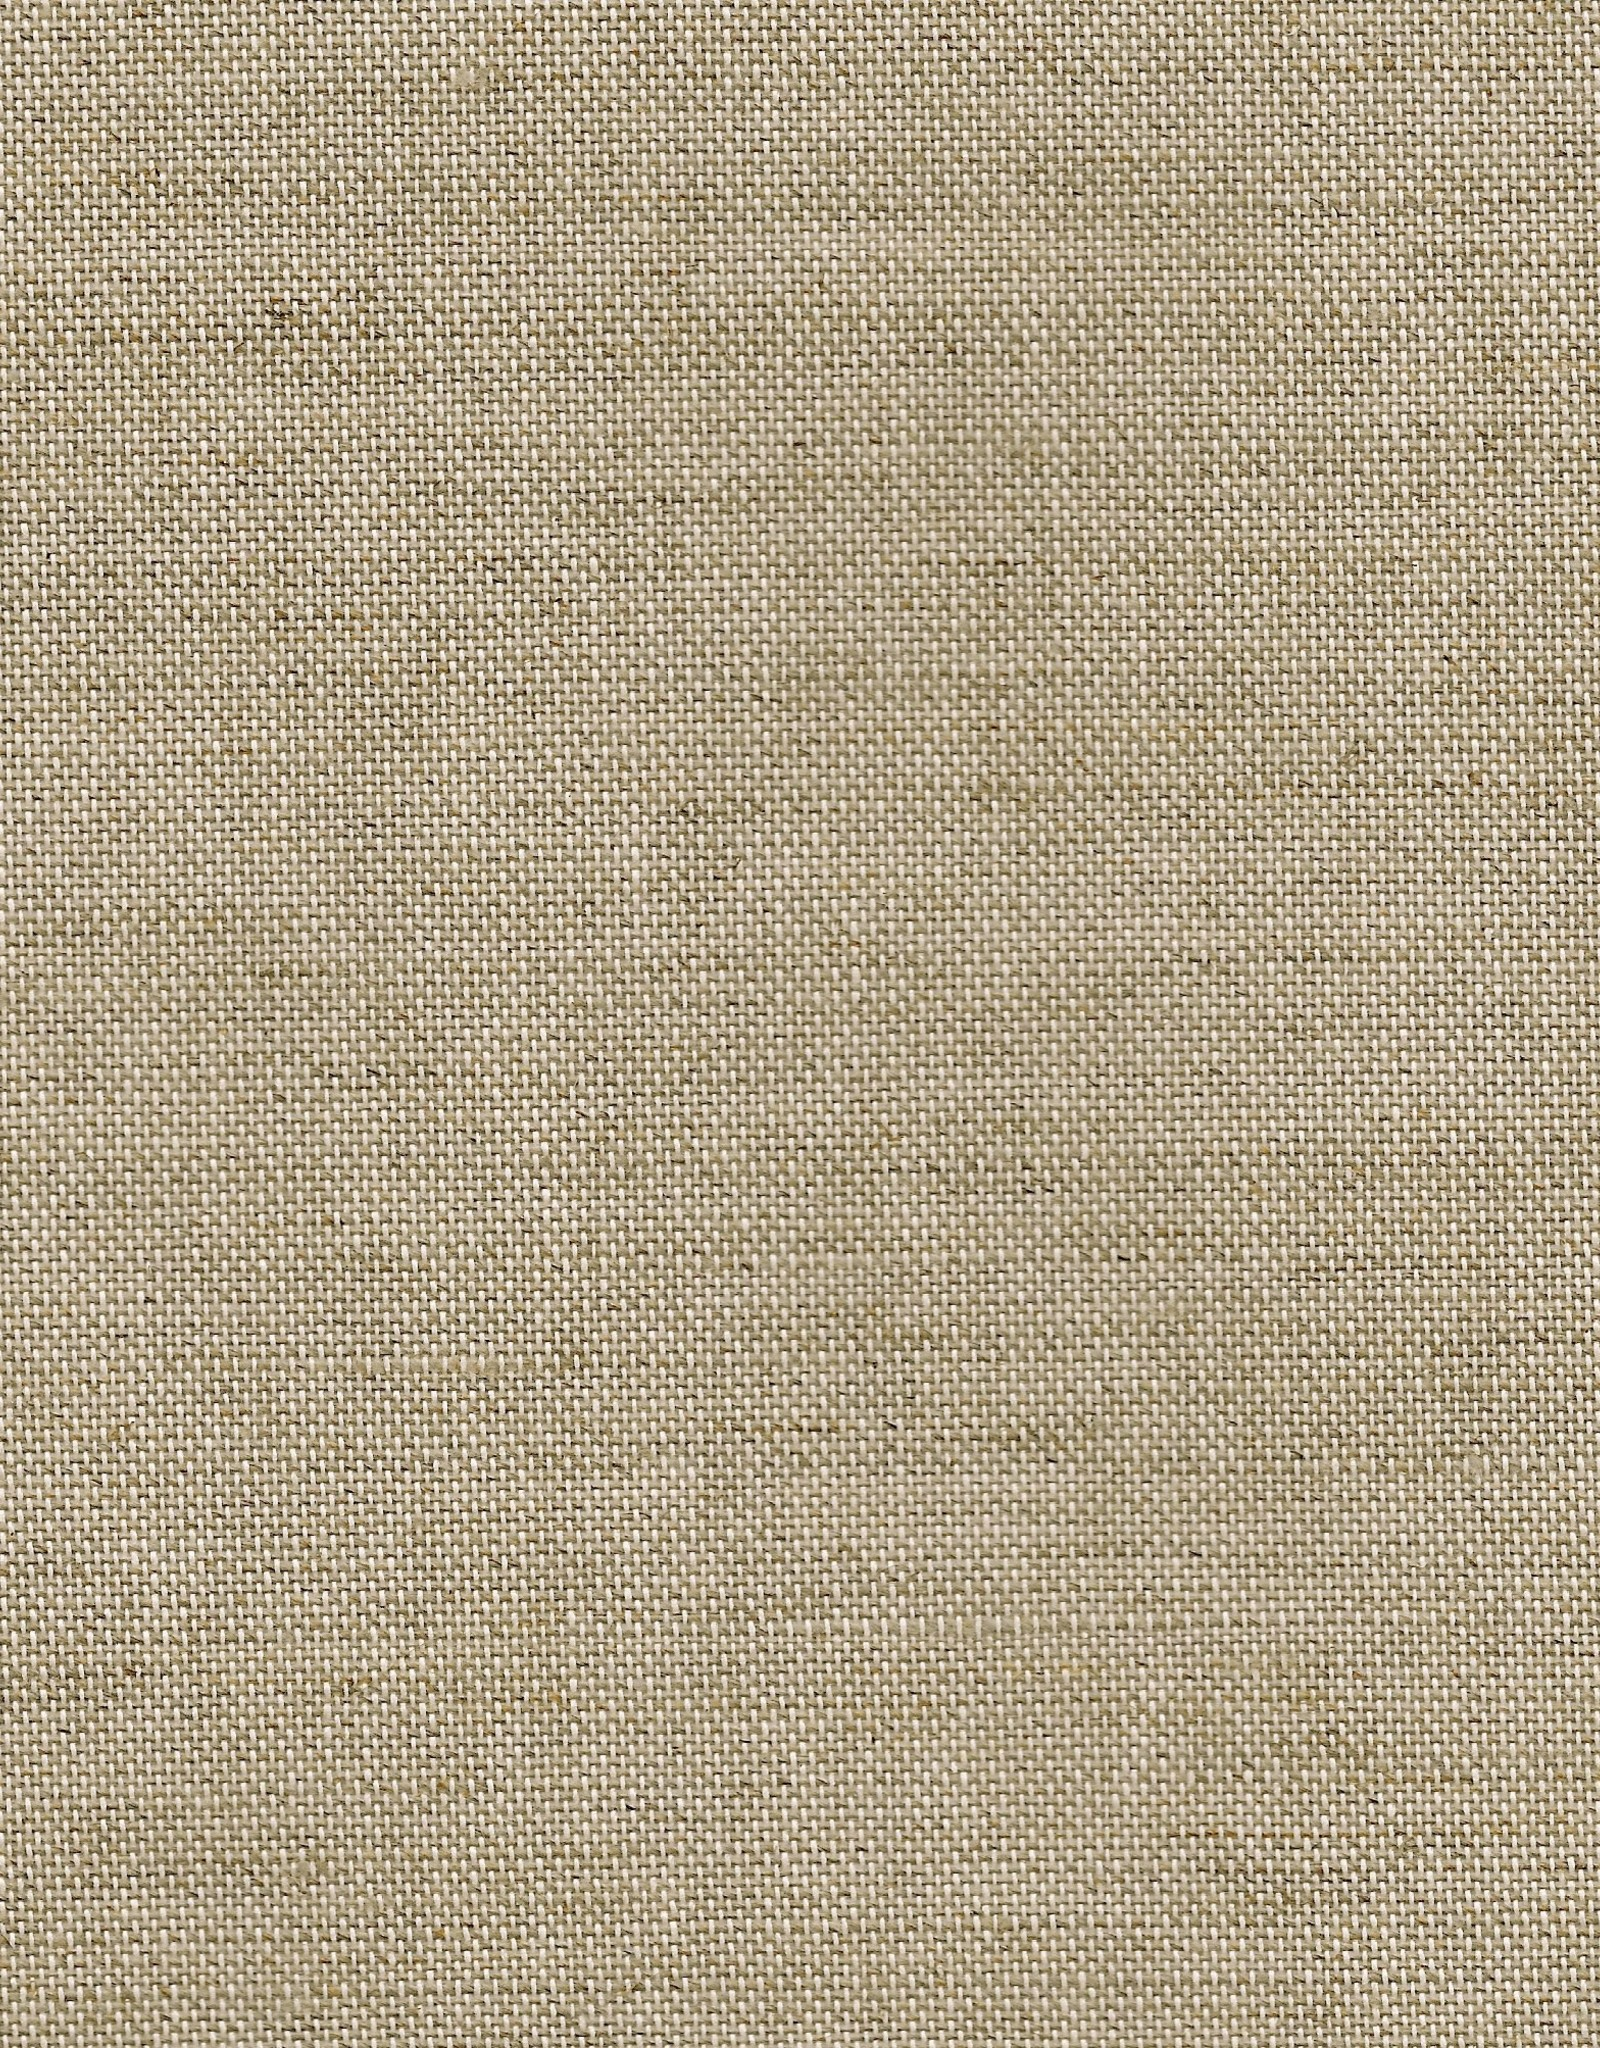 "Book Cloth Linen, 17"" x 19"", 1 Sheet, Acid-Free, 100% Rayon, Paper Backed"